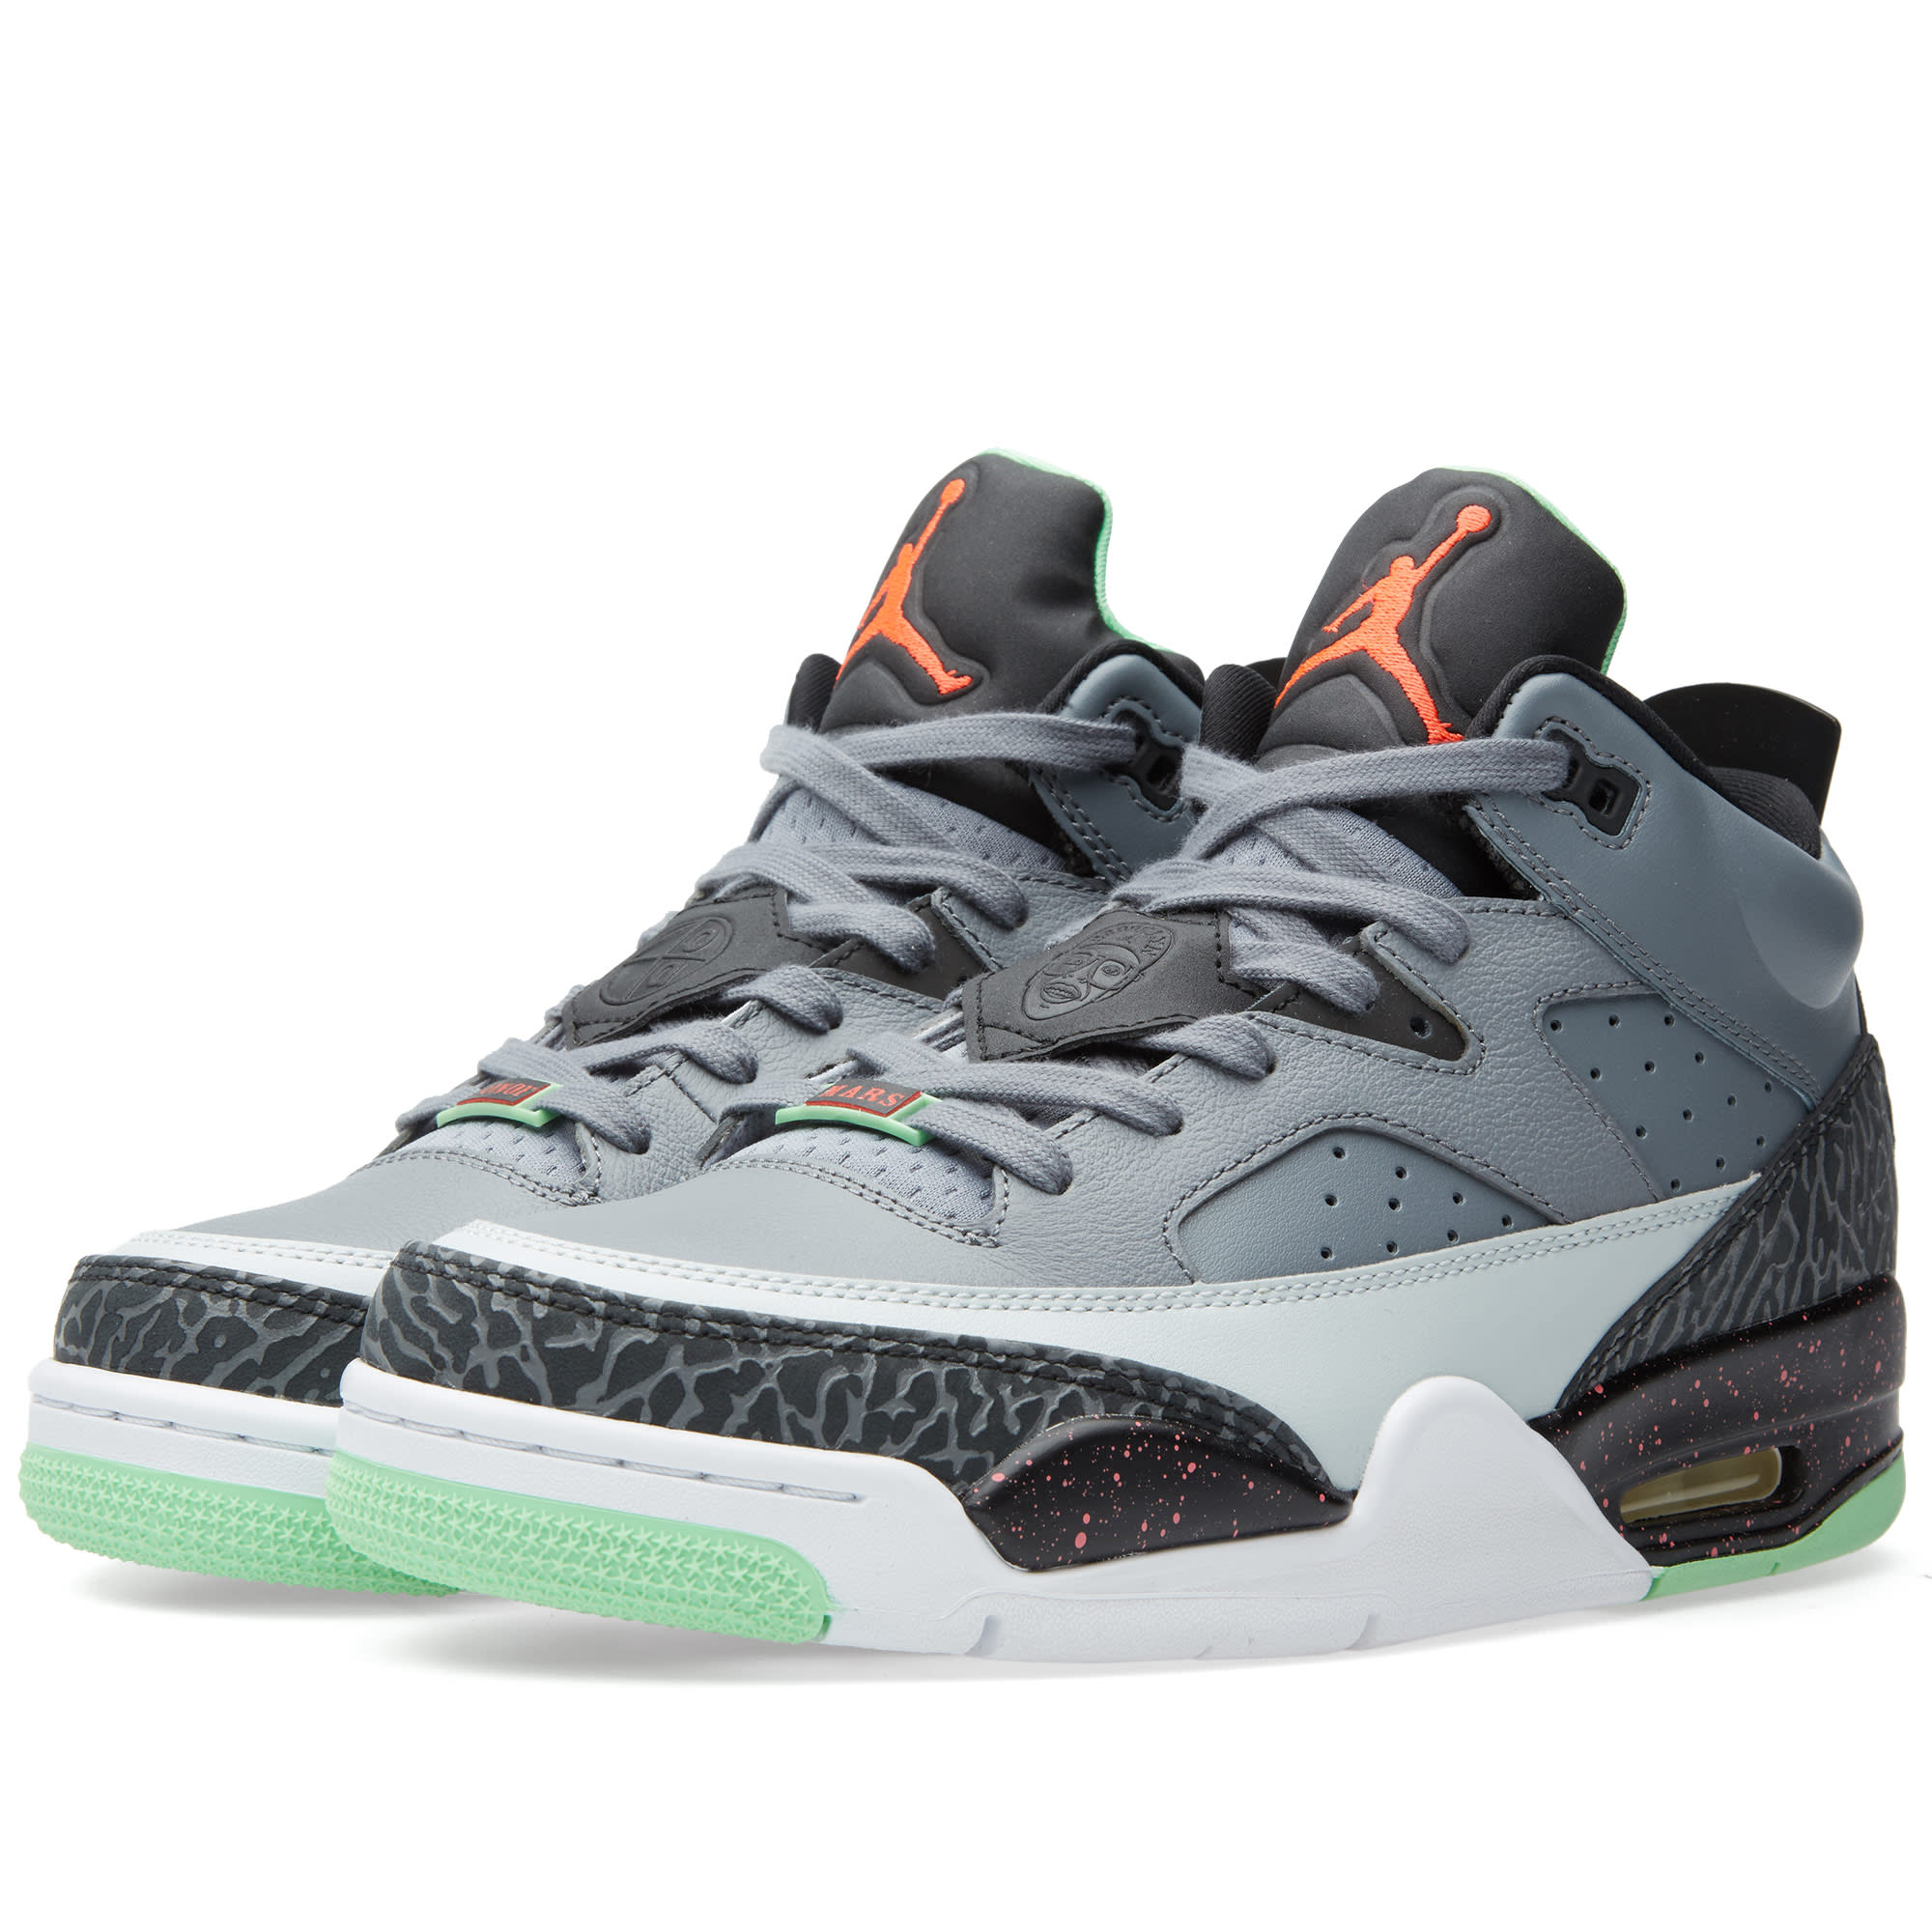 d01c9a81c1f Nike Jordan Son of Mars Low Cool Grey, Infrared 23 & Black | END.